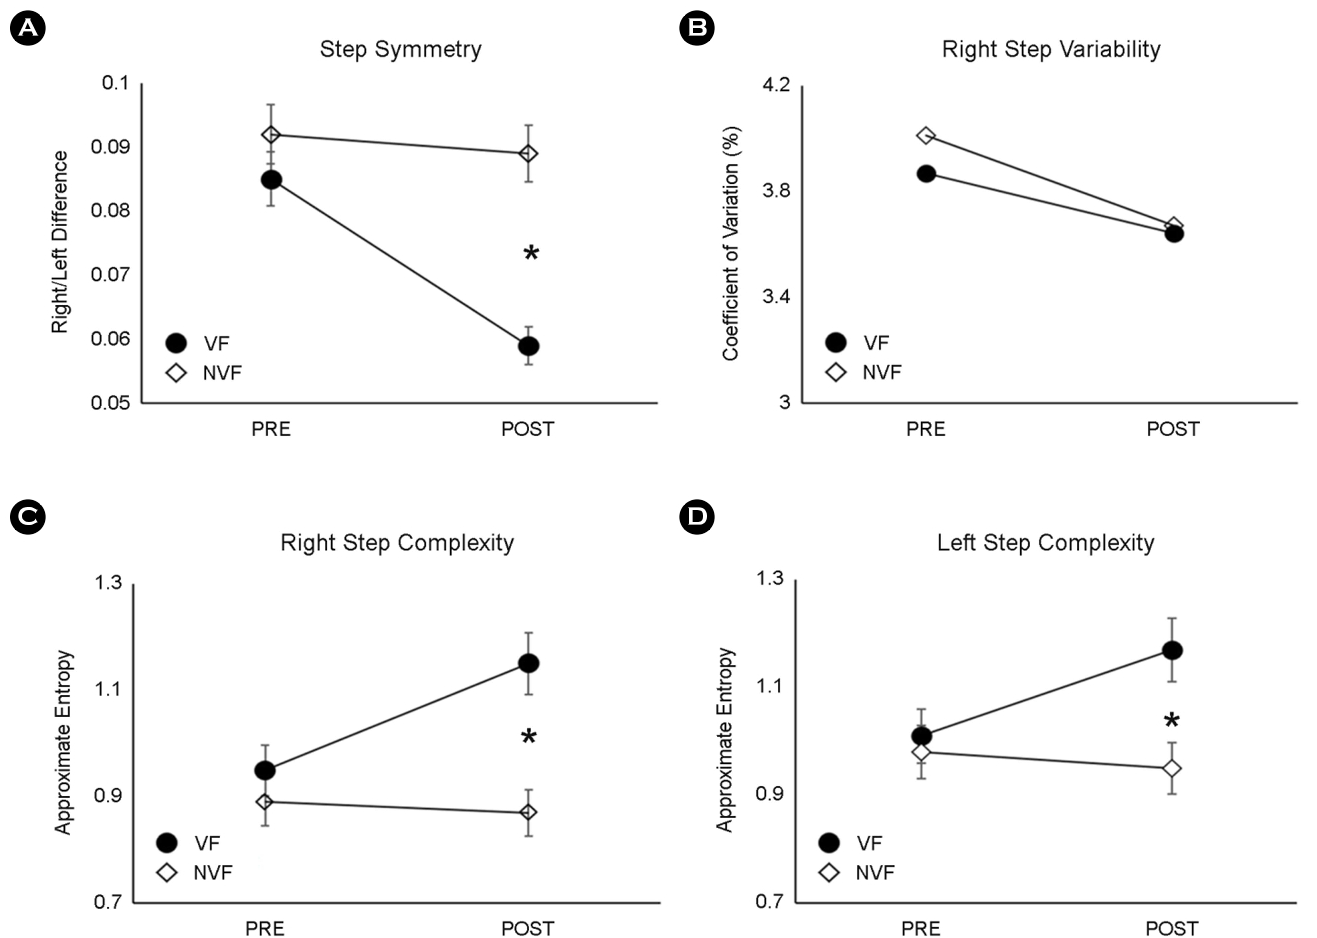 Figure 2. Graphs show Step Symmetry, Step Variability and Step Complexity at Pre and Post trainings in VF and NVF, and asterisk indicate a statistical significance between VF and NVF groups.